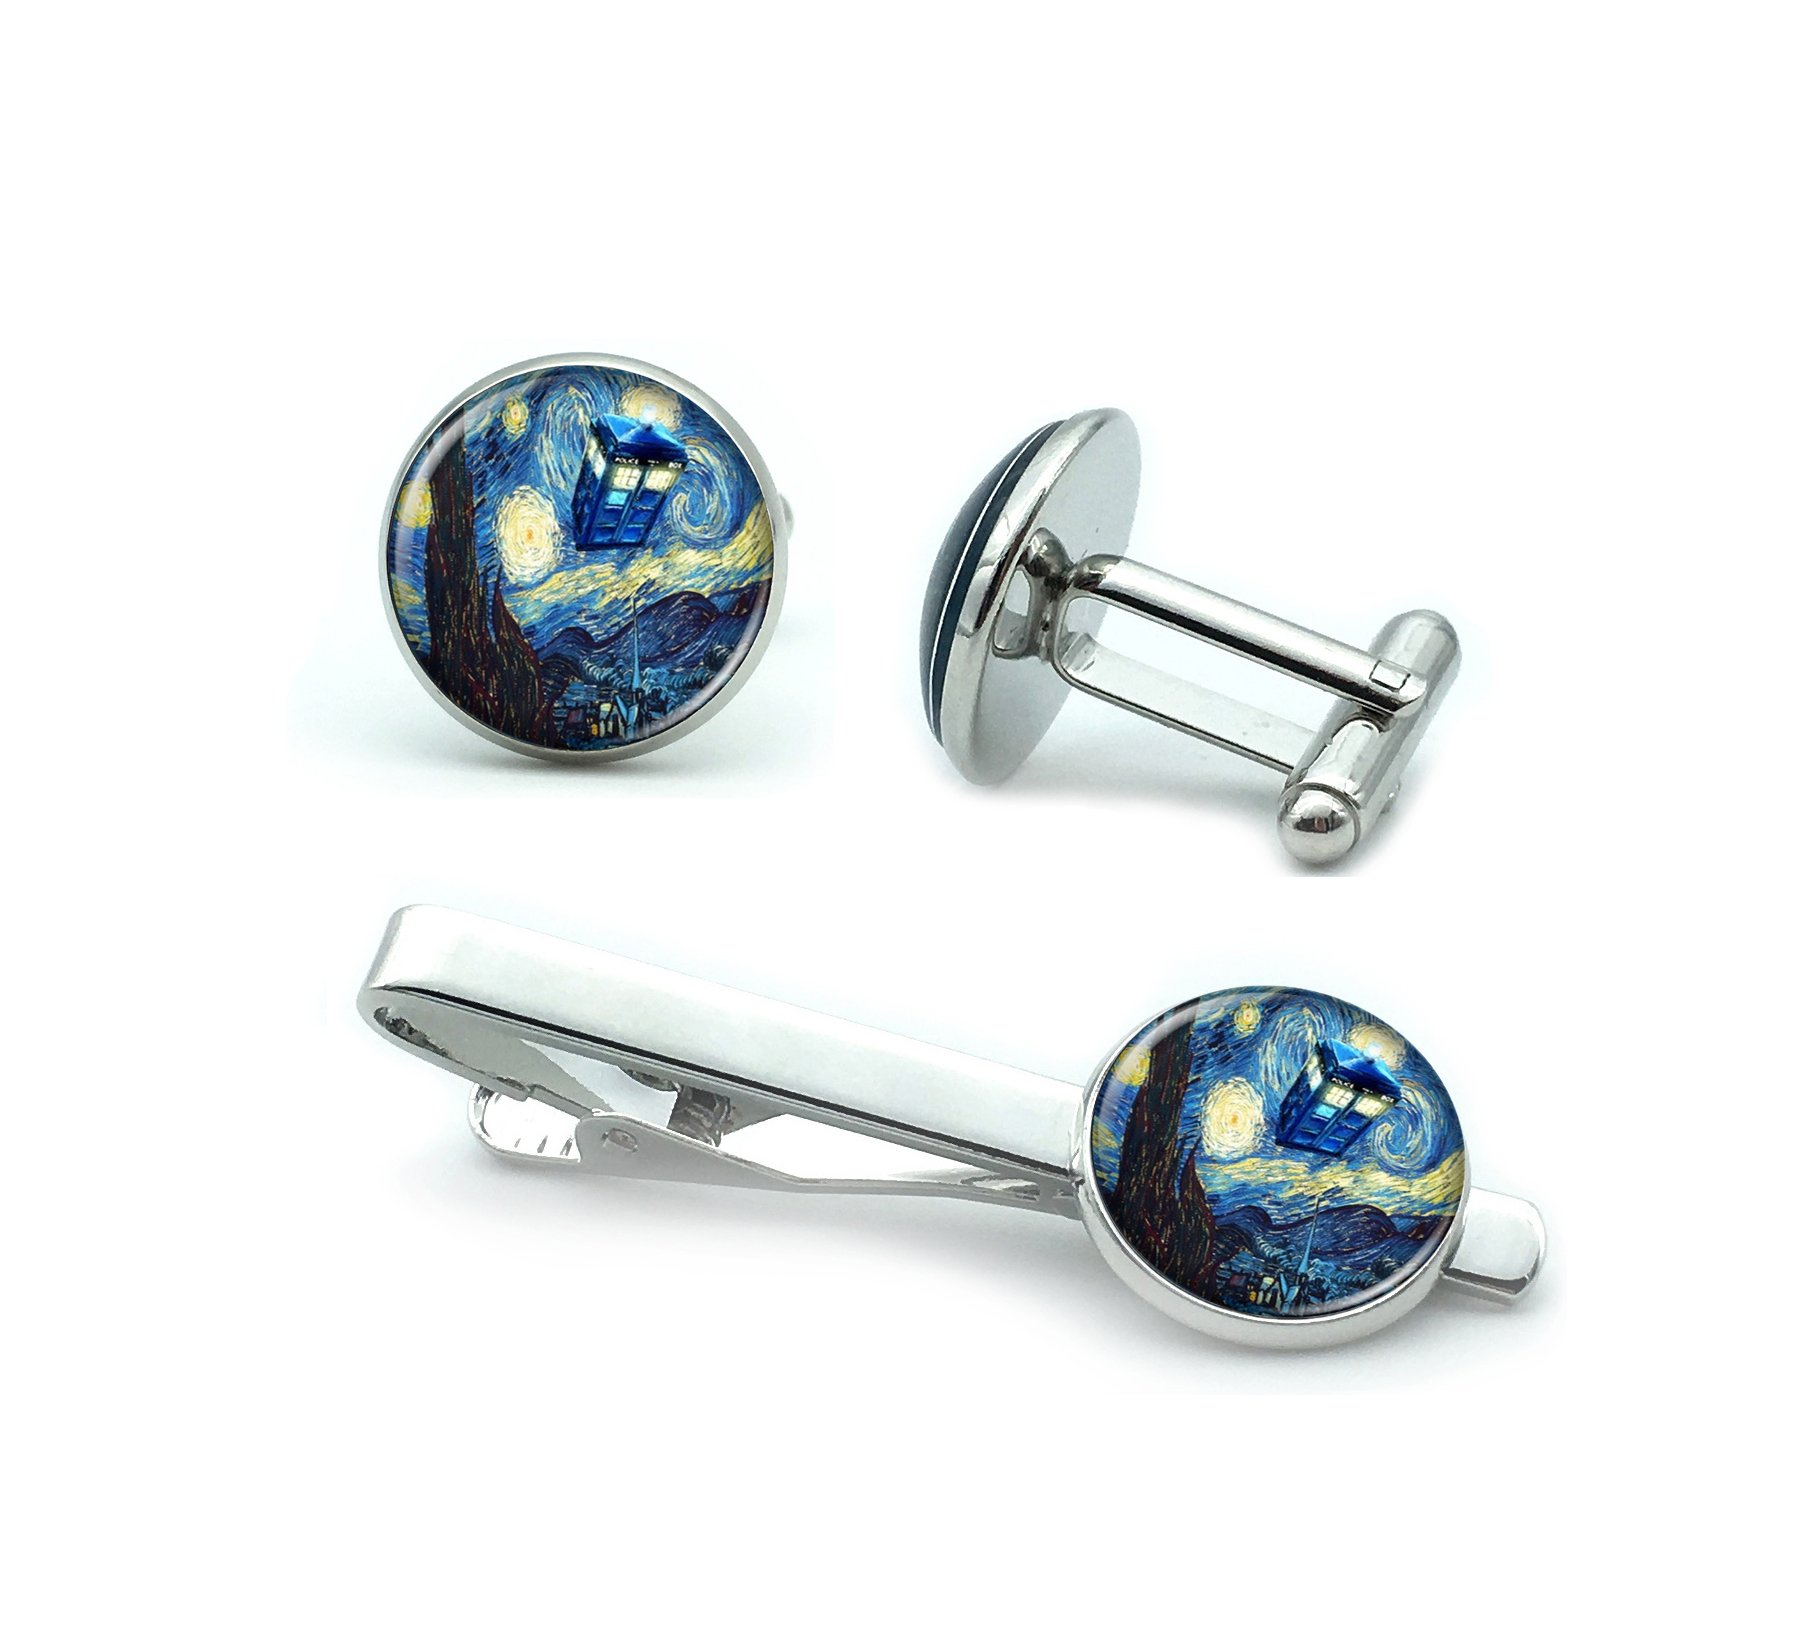 Mens' Silver Set of Cufflinks and Tie Clip Wedding Doctor Who TARDIS Starry Night Gift Box